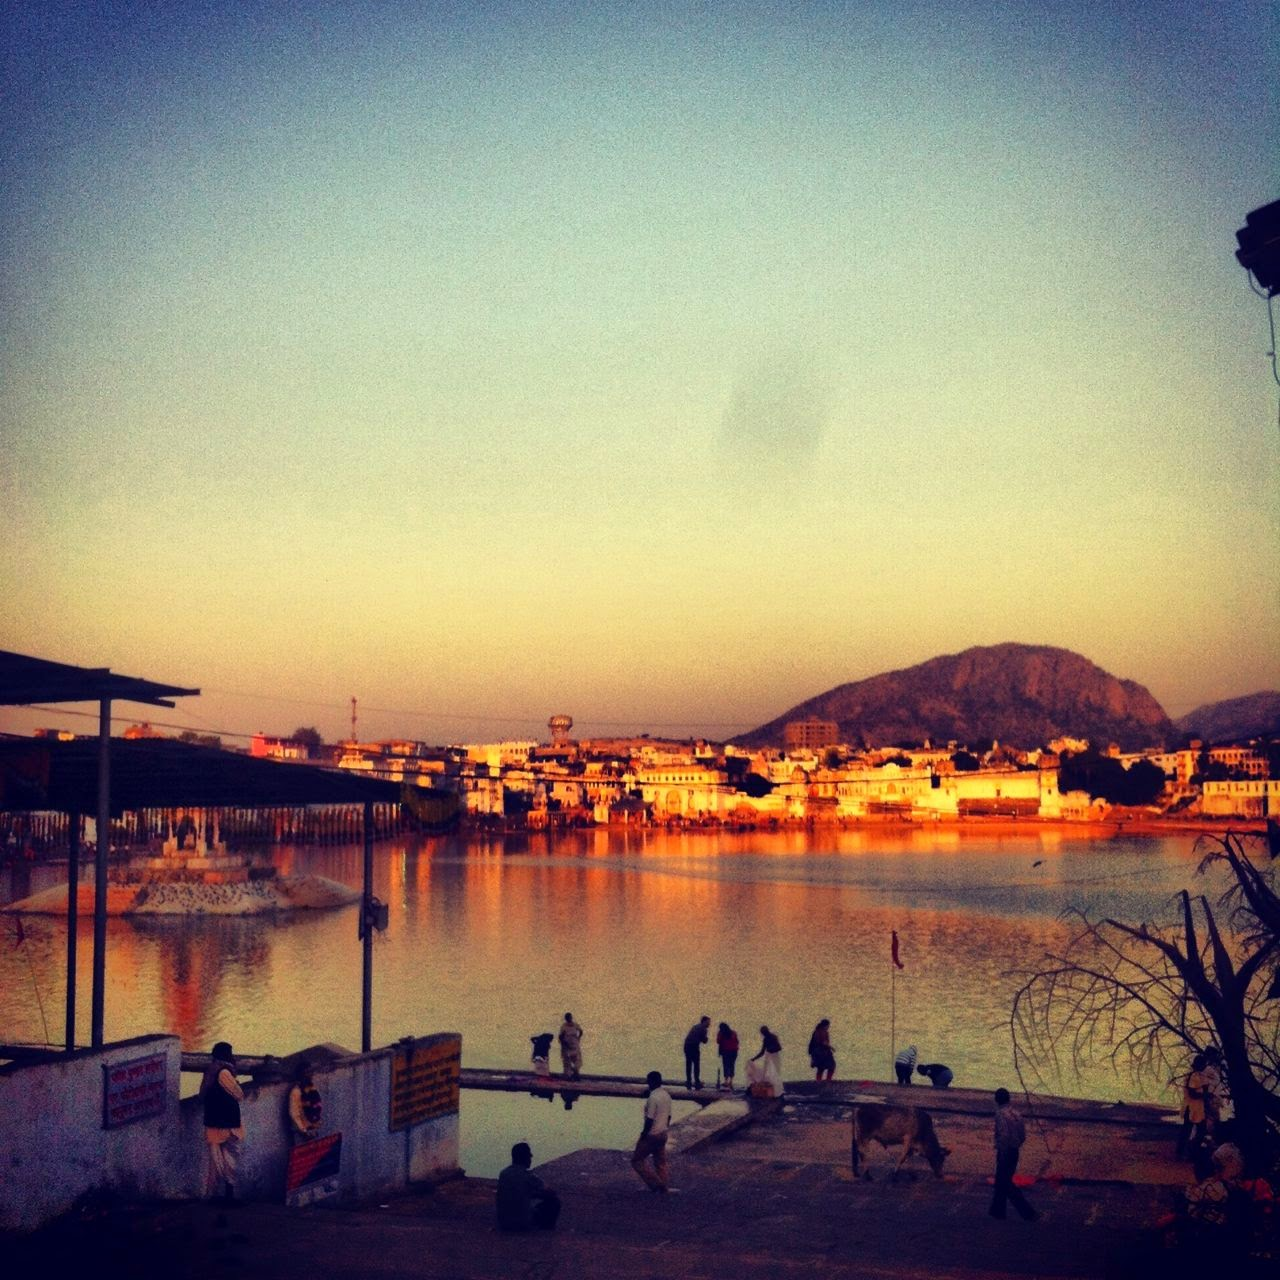 One night in Pushkar_03